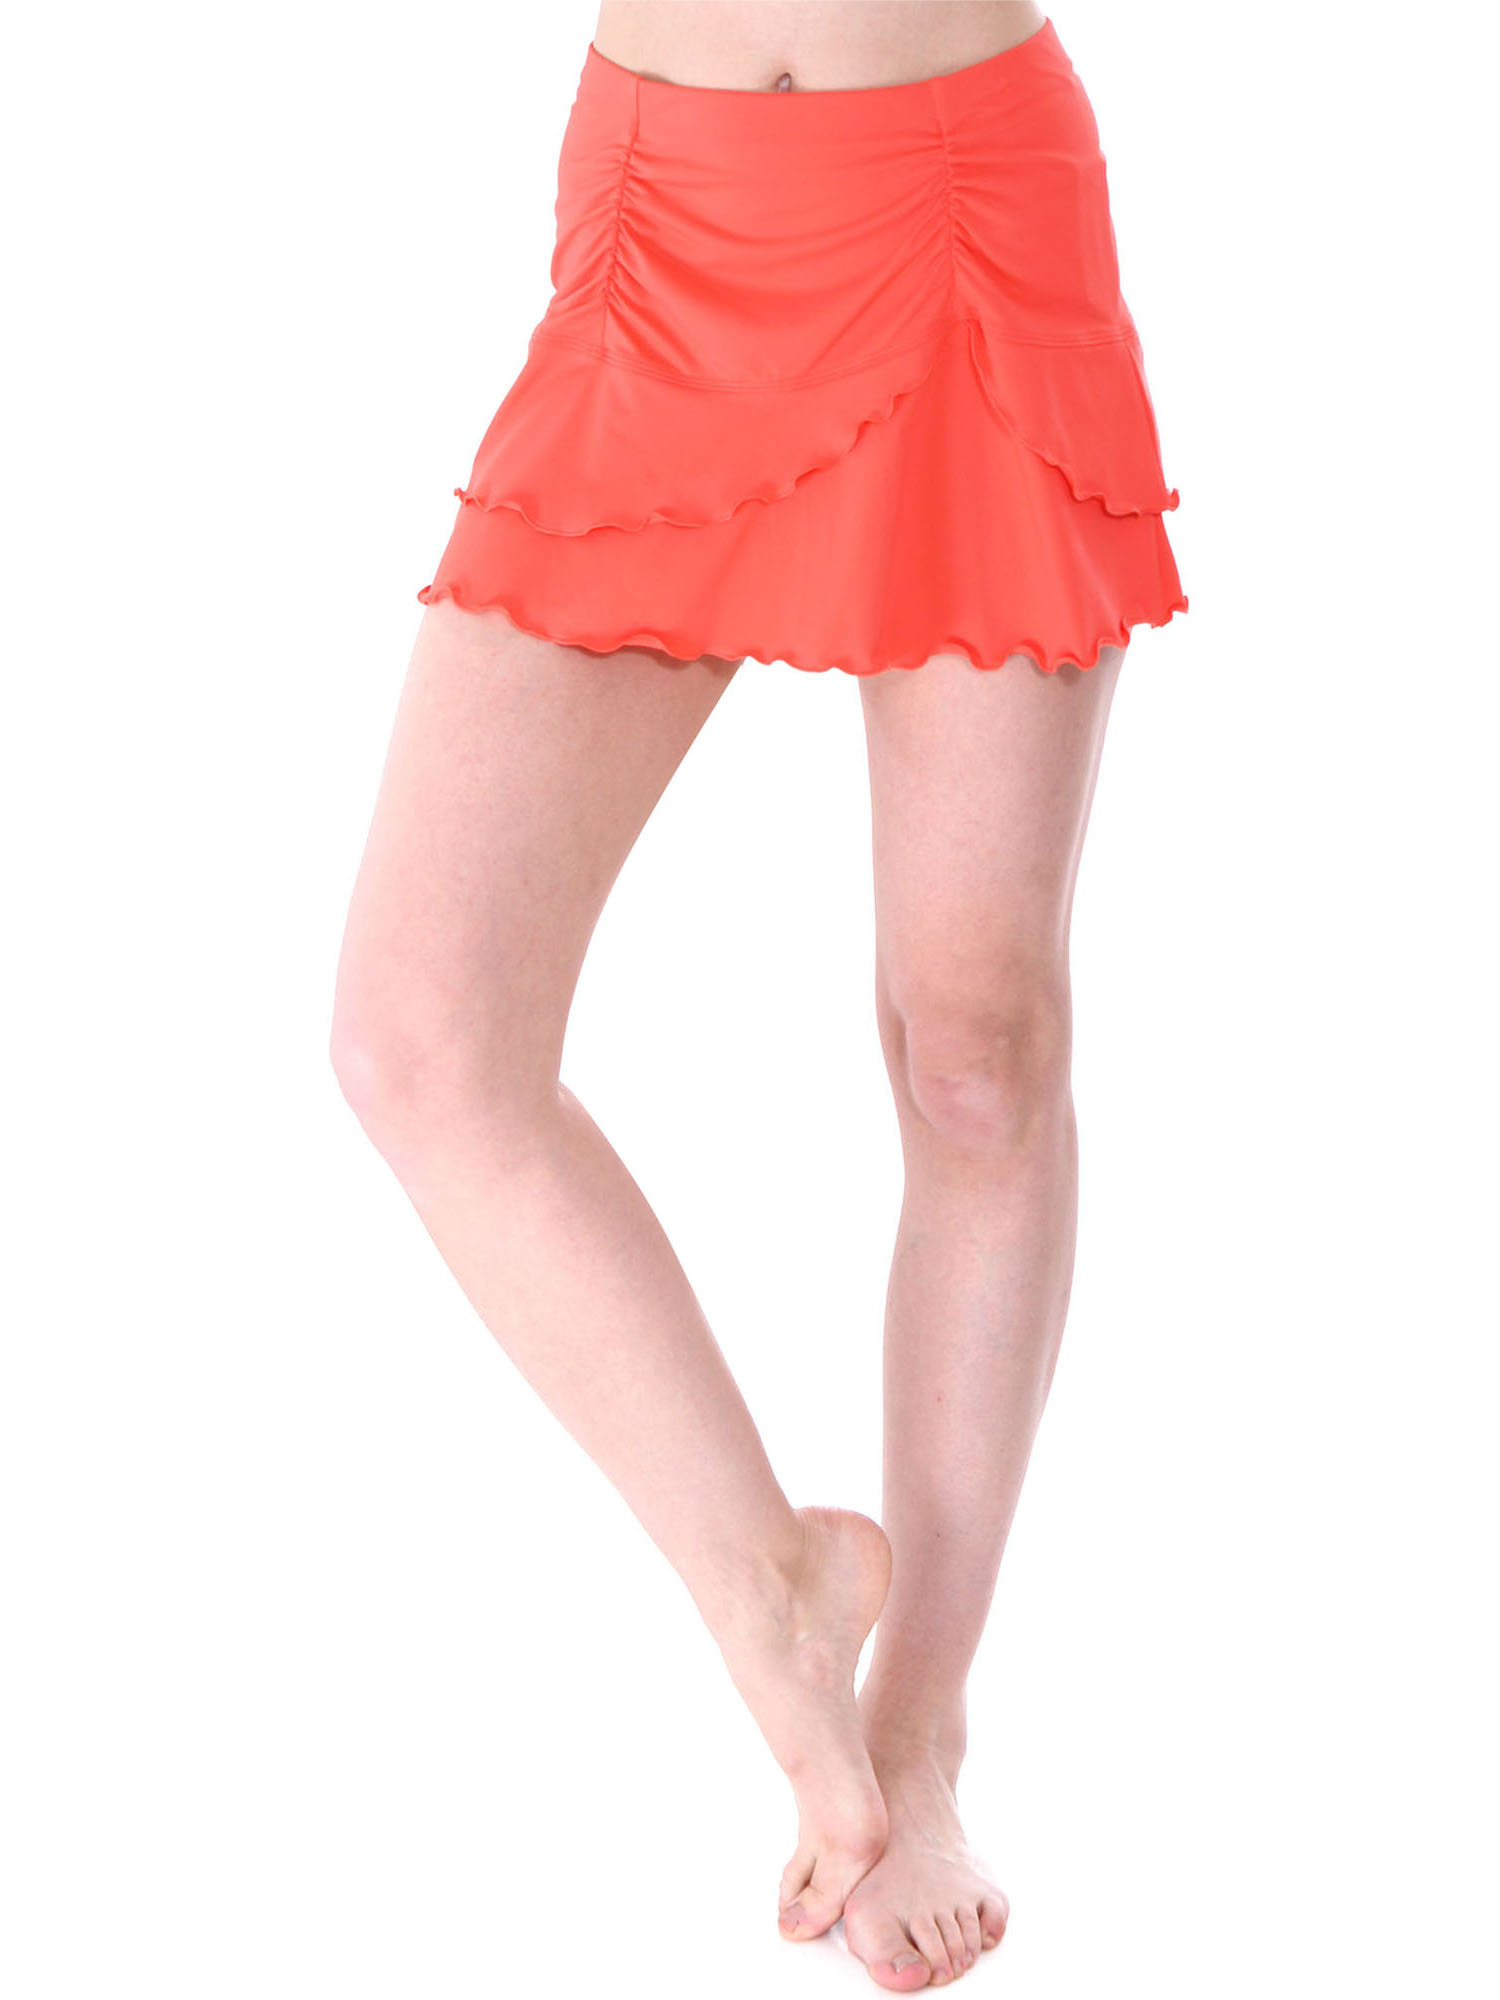 Women's Summer Solid Colored Cover Up Skirt Swim Skirt, Coral, L